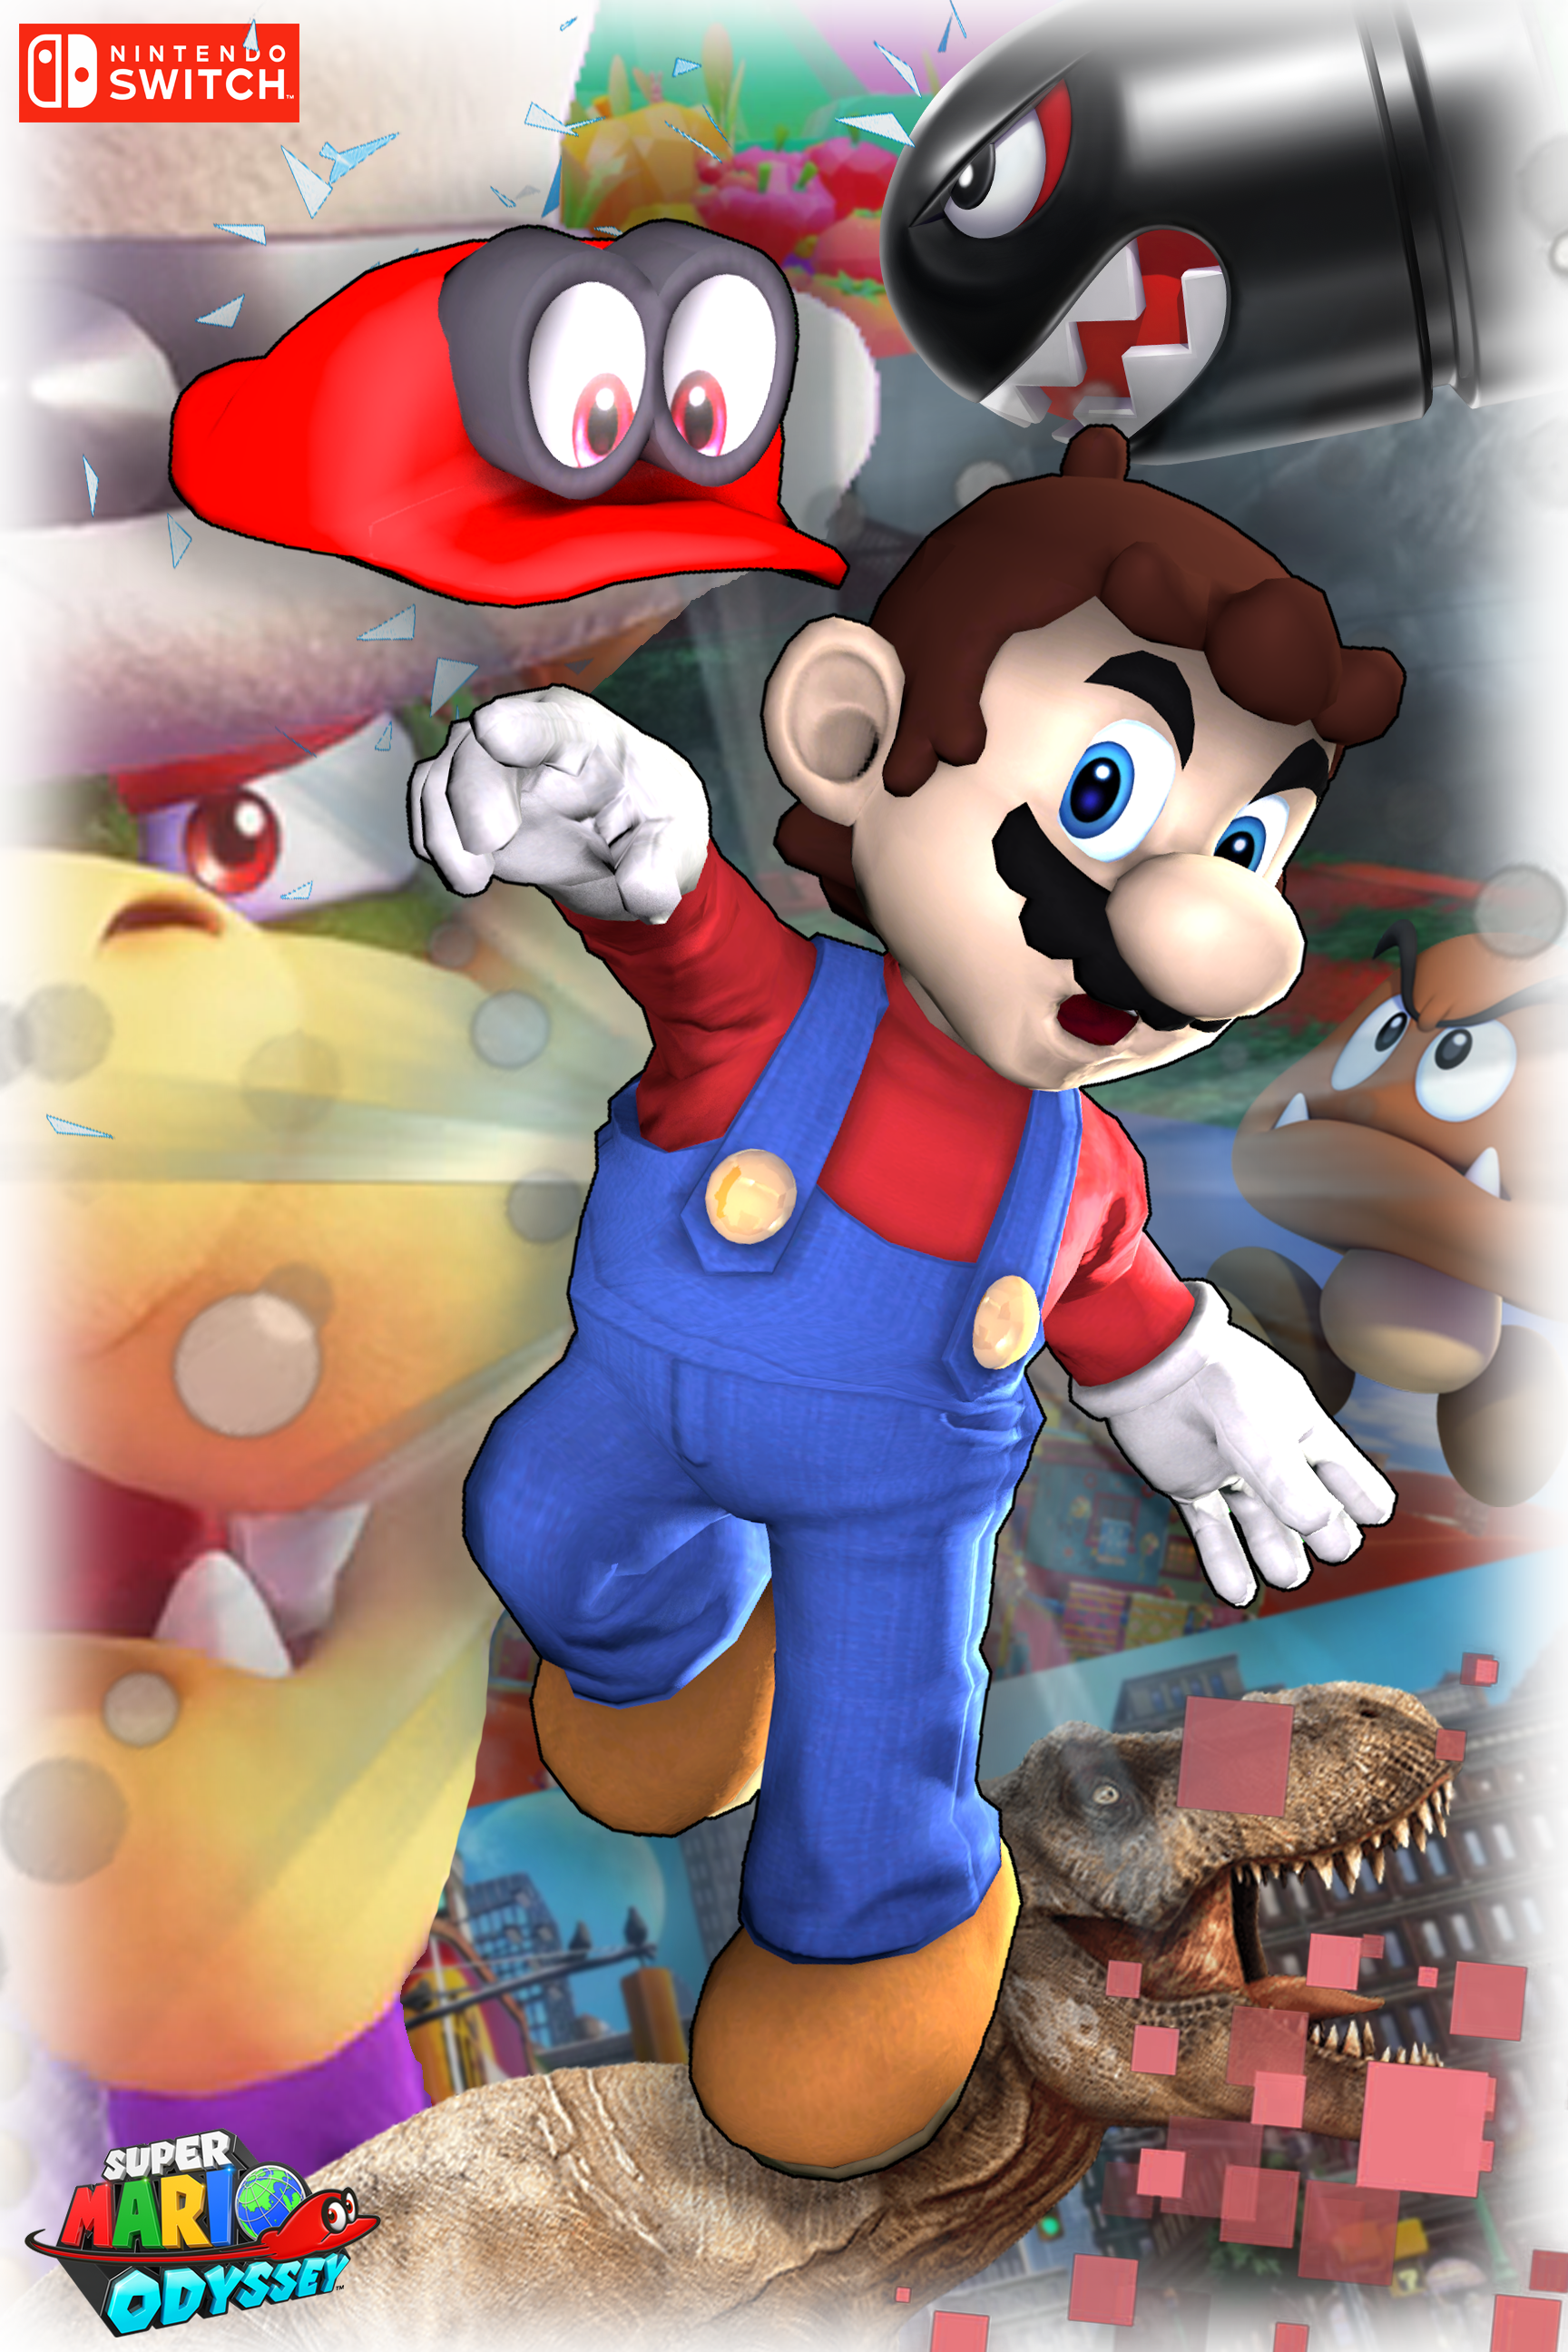 Super mario odyssey poster by iamyoyomande1 on deviantart for Super mario odyssey paintings